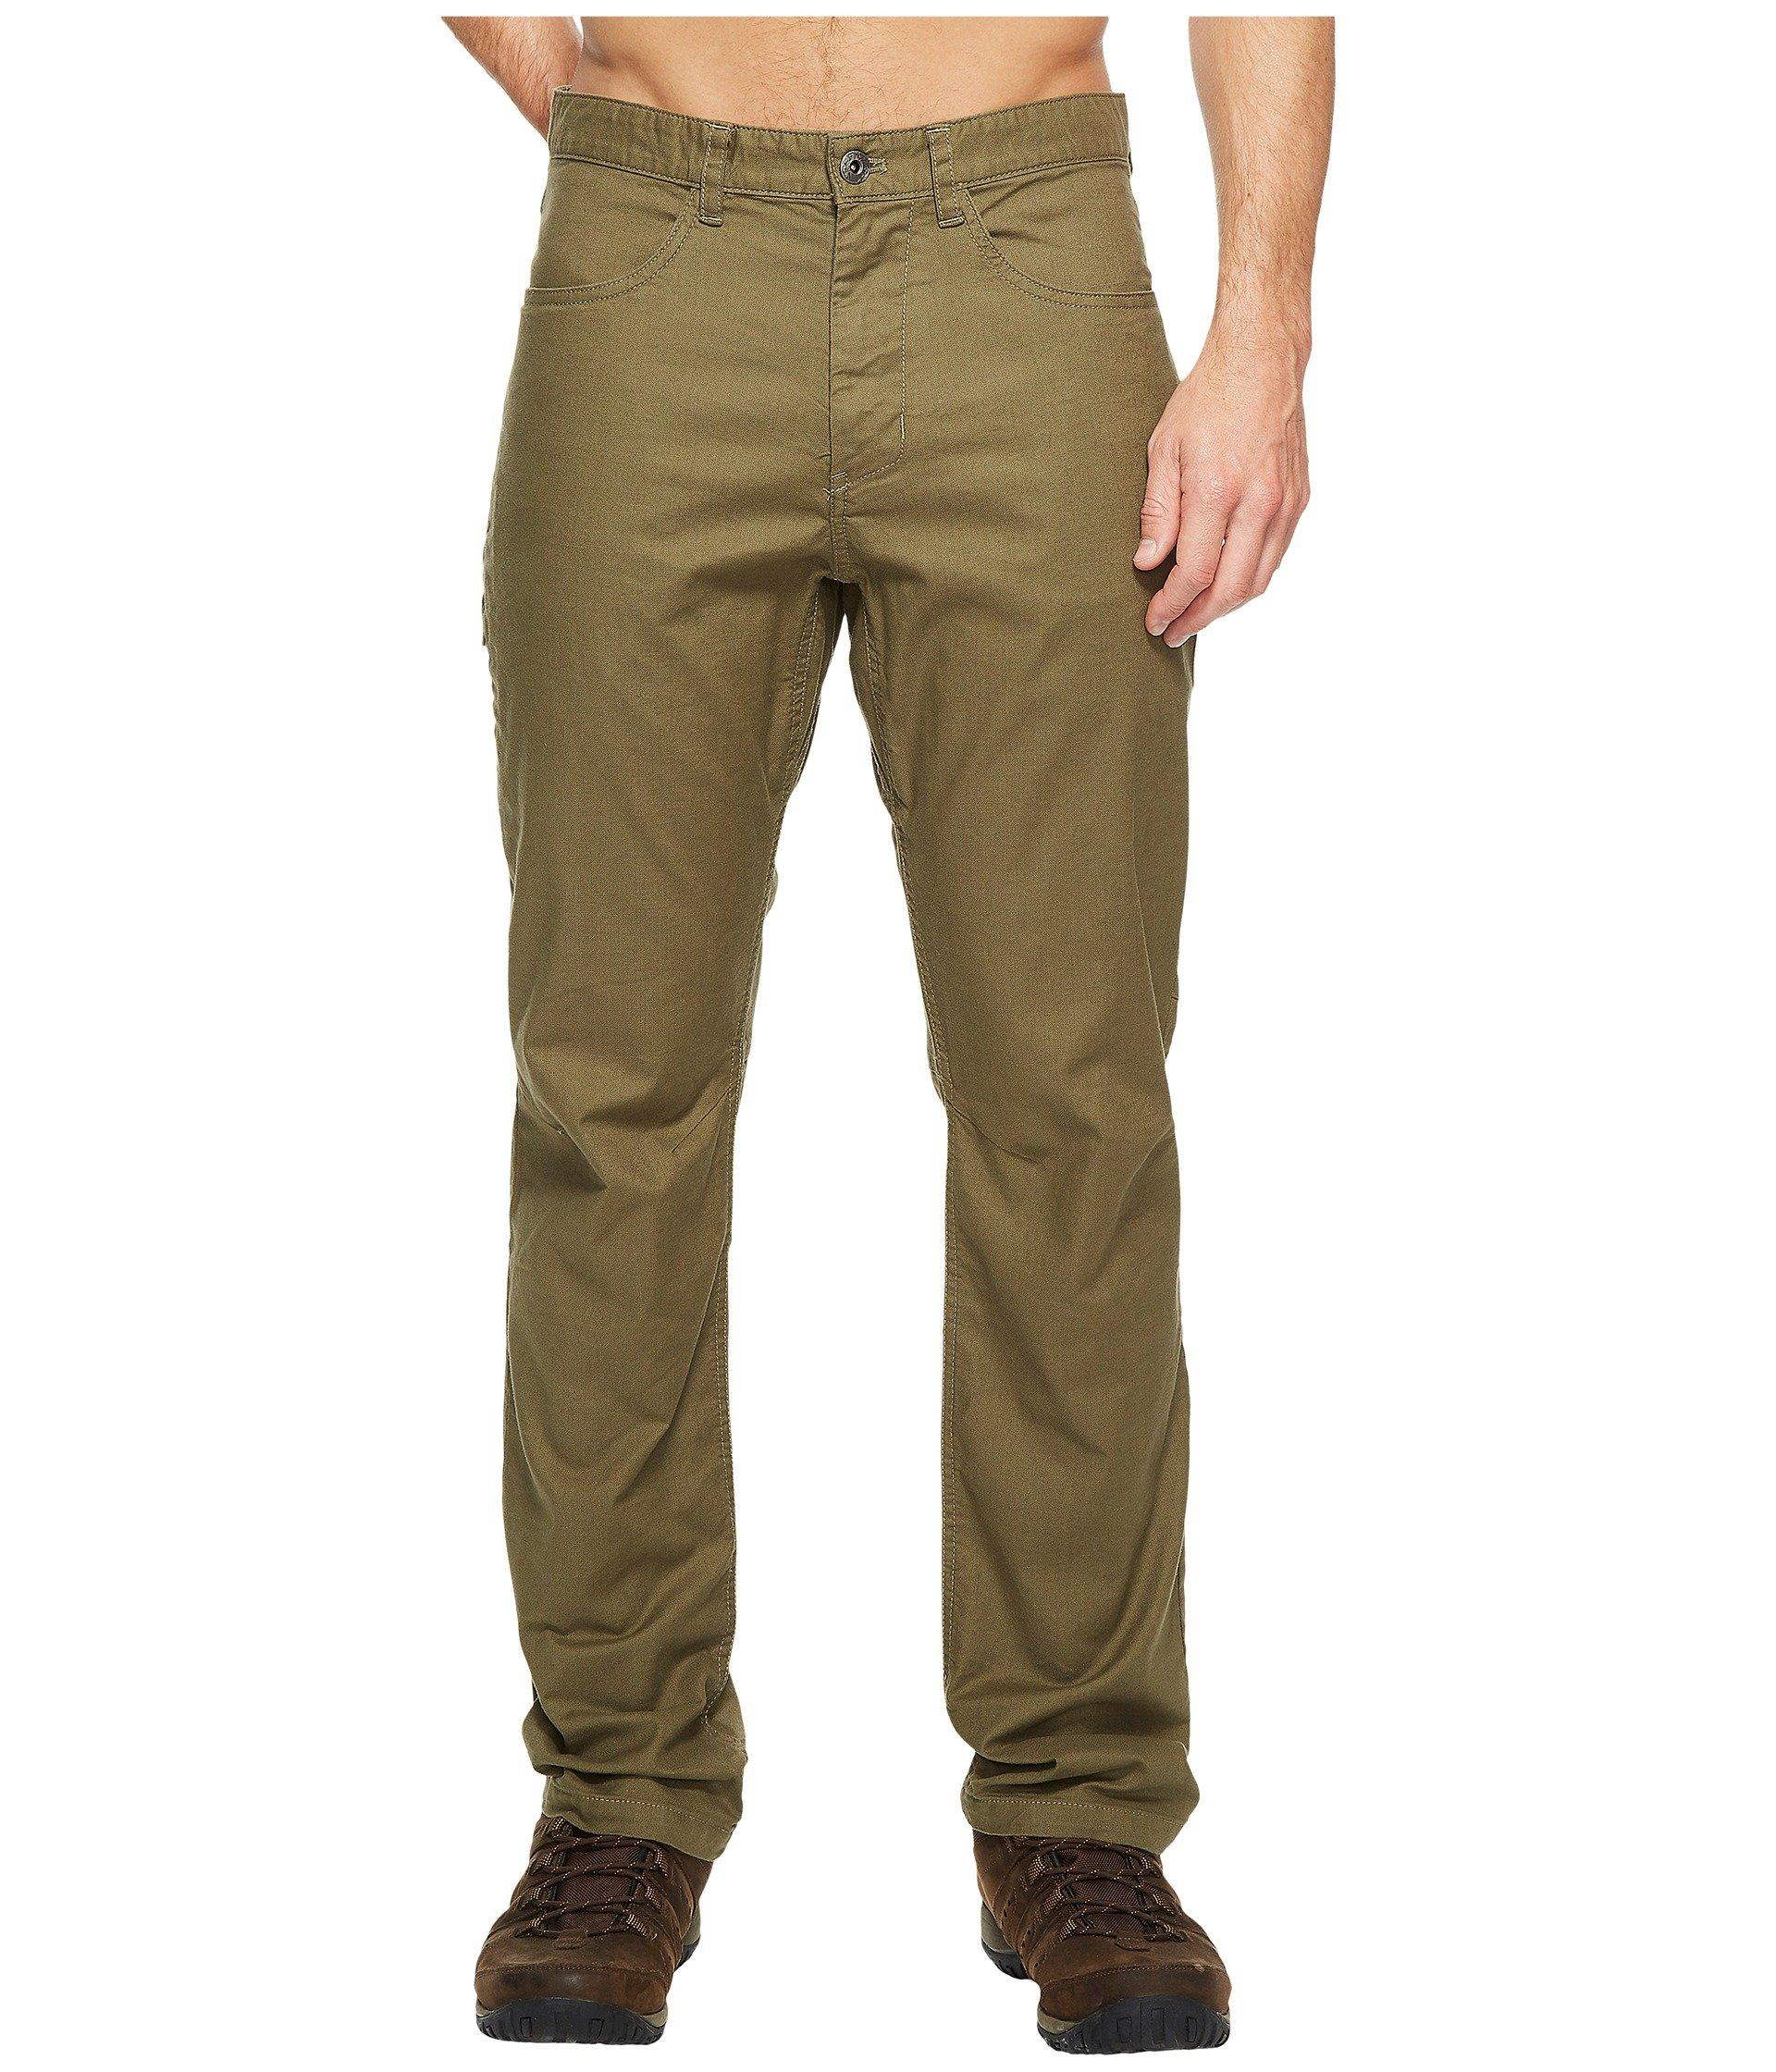 Various Sizes Burnt Olive Green The North Face Relaxed Motion Pants